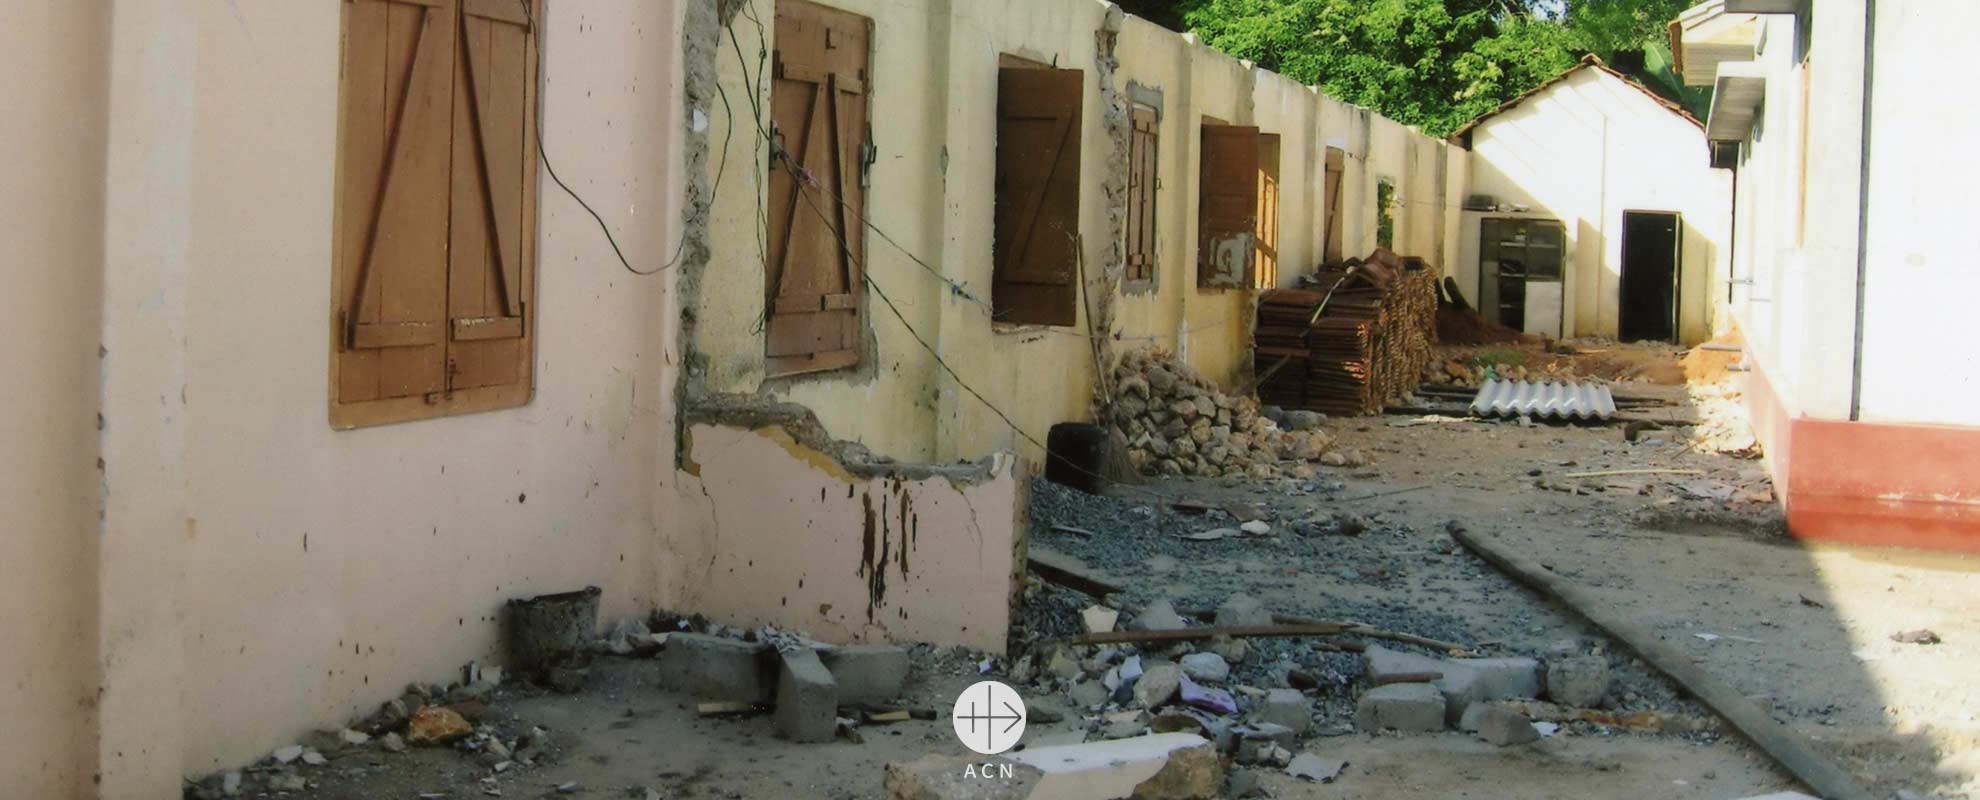 Sri Lanka: Help for the reconstruction of a convent rendered uninhabitable as a result of the civil war